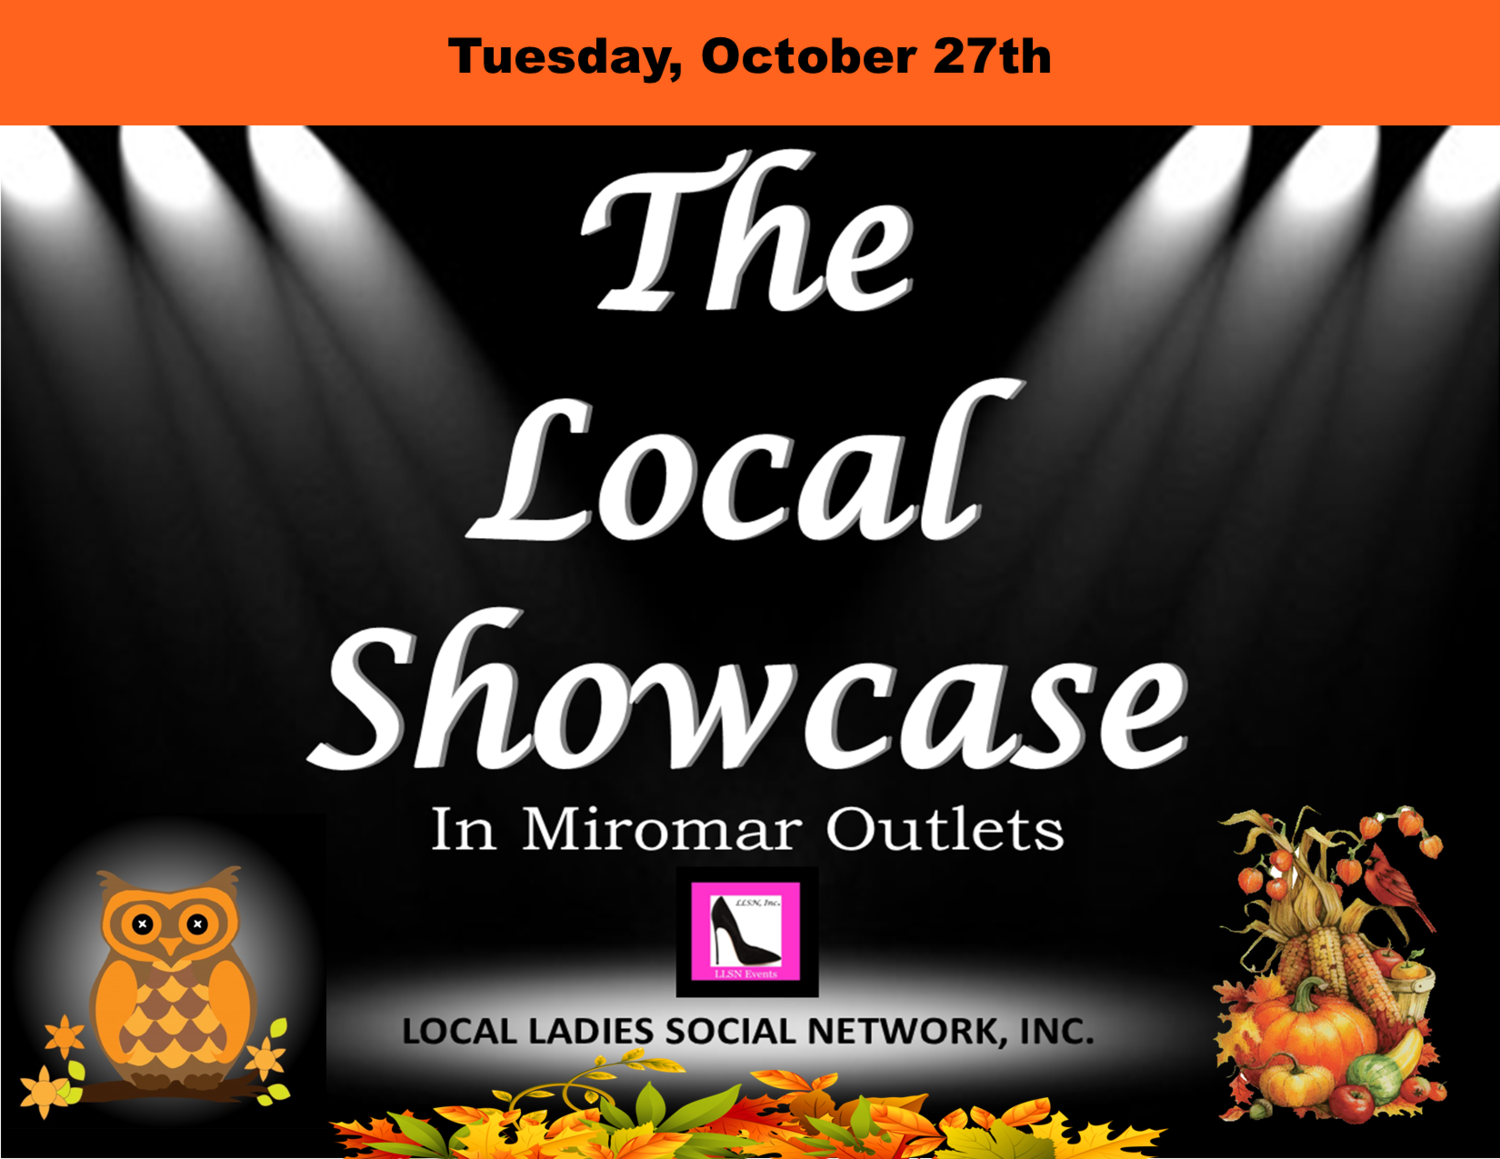 Tuesday, October 27th, 11am-7pm.